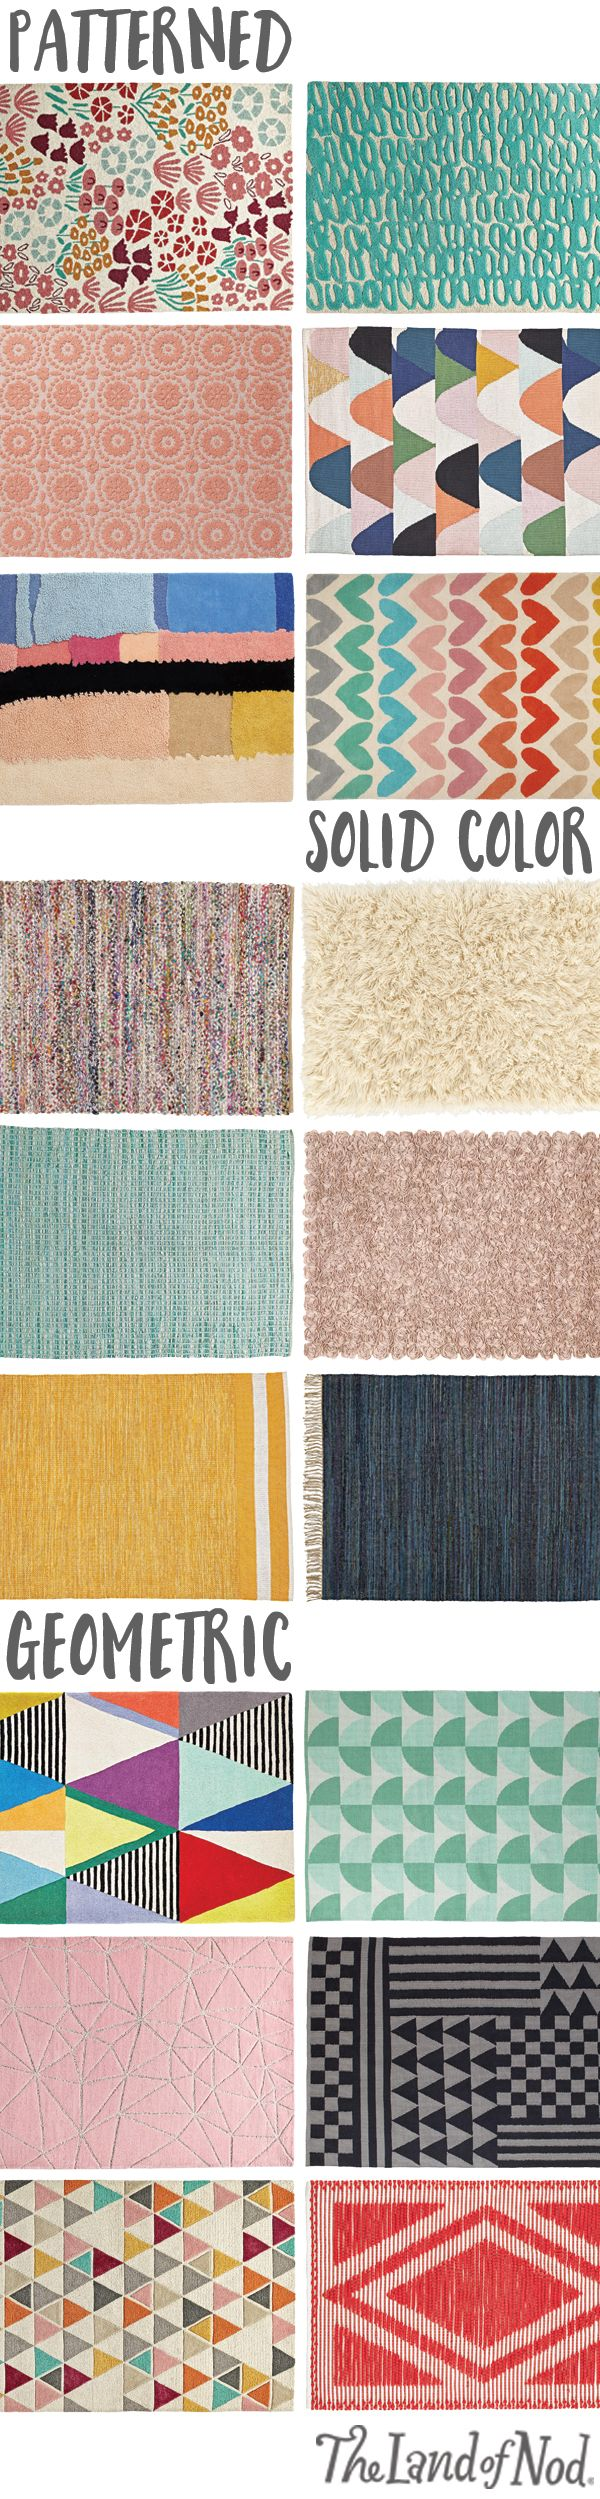 Looking for a rug to spruce up your kid's bedroom, playroom or nursery? You can count on The Land of Nod for stylish yet unexpected rugs for girls or boys. From carpet and play rugs to patterned and solid rugs, there's a style to suit your little one's room.